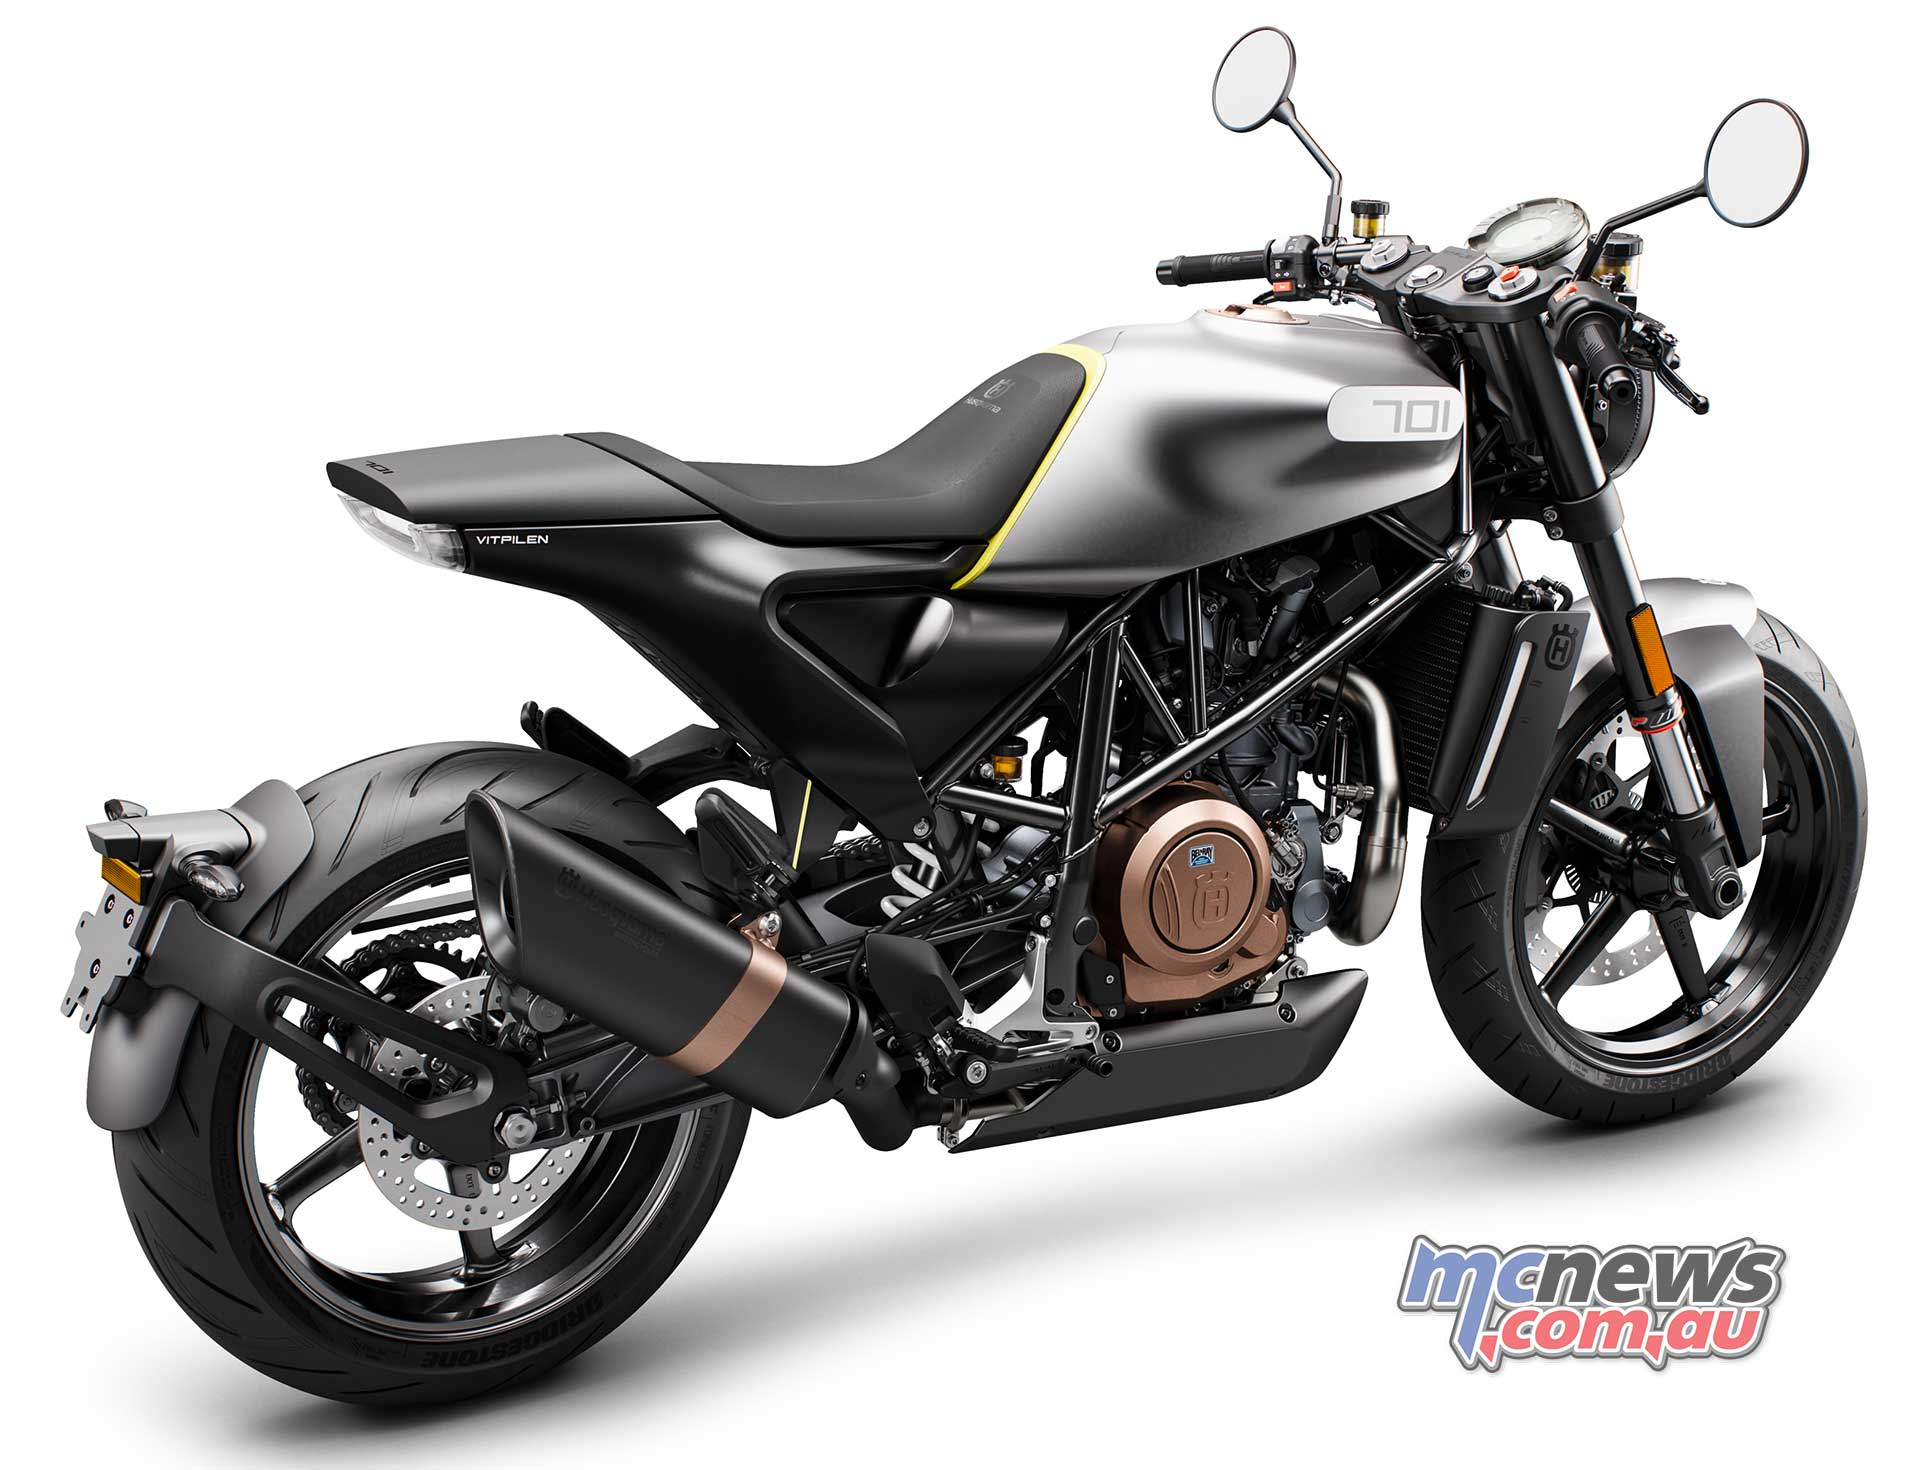 Husqvarna Vitpilen 701 Here By Middle Of 2018 Mcnews Com Au